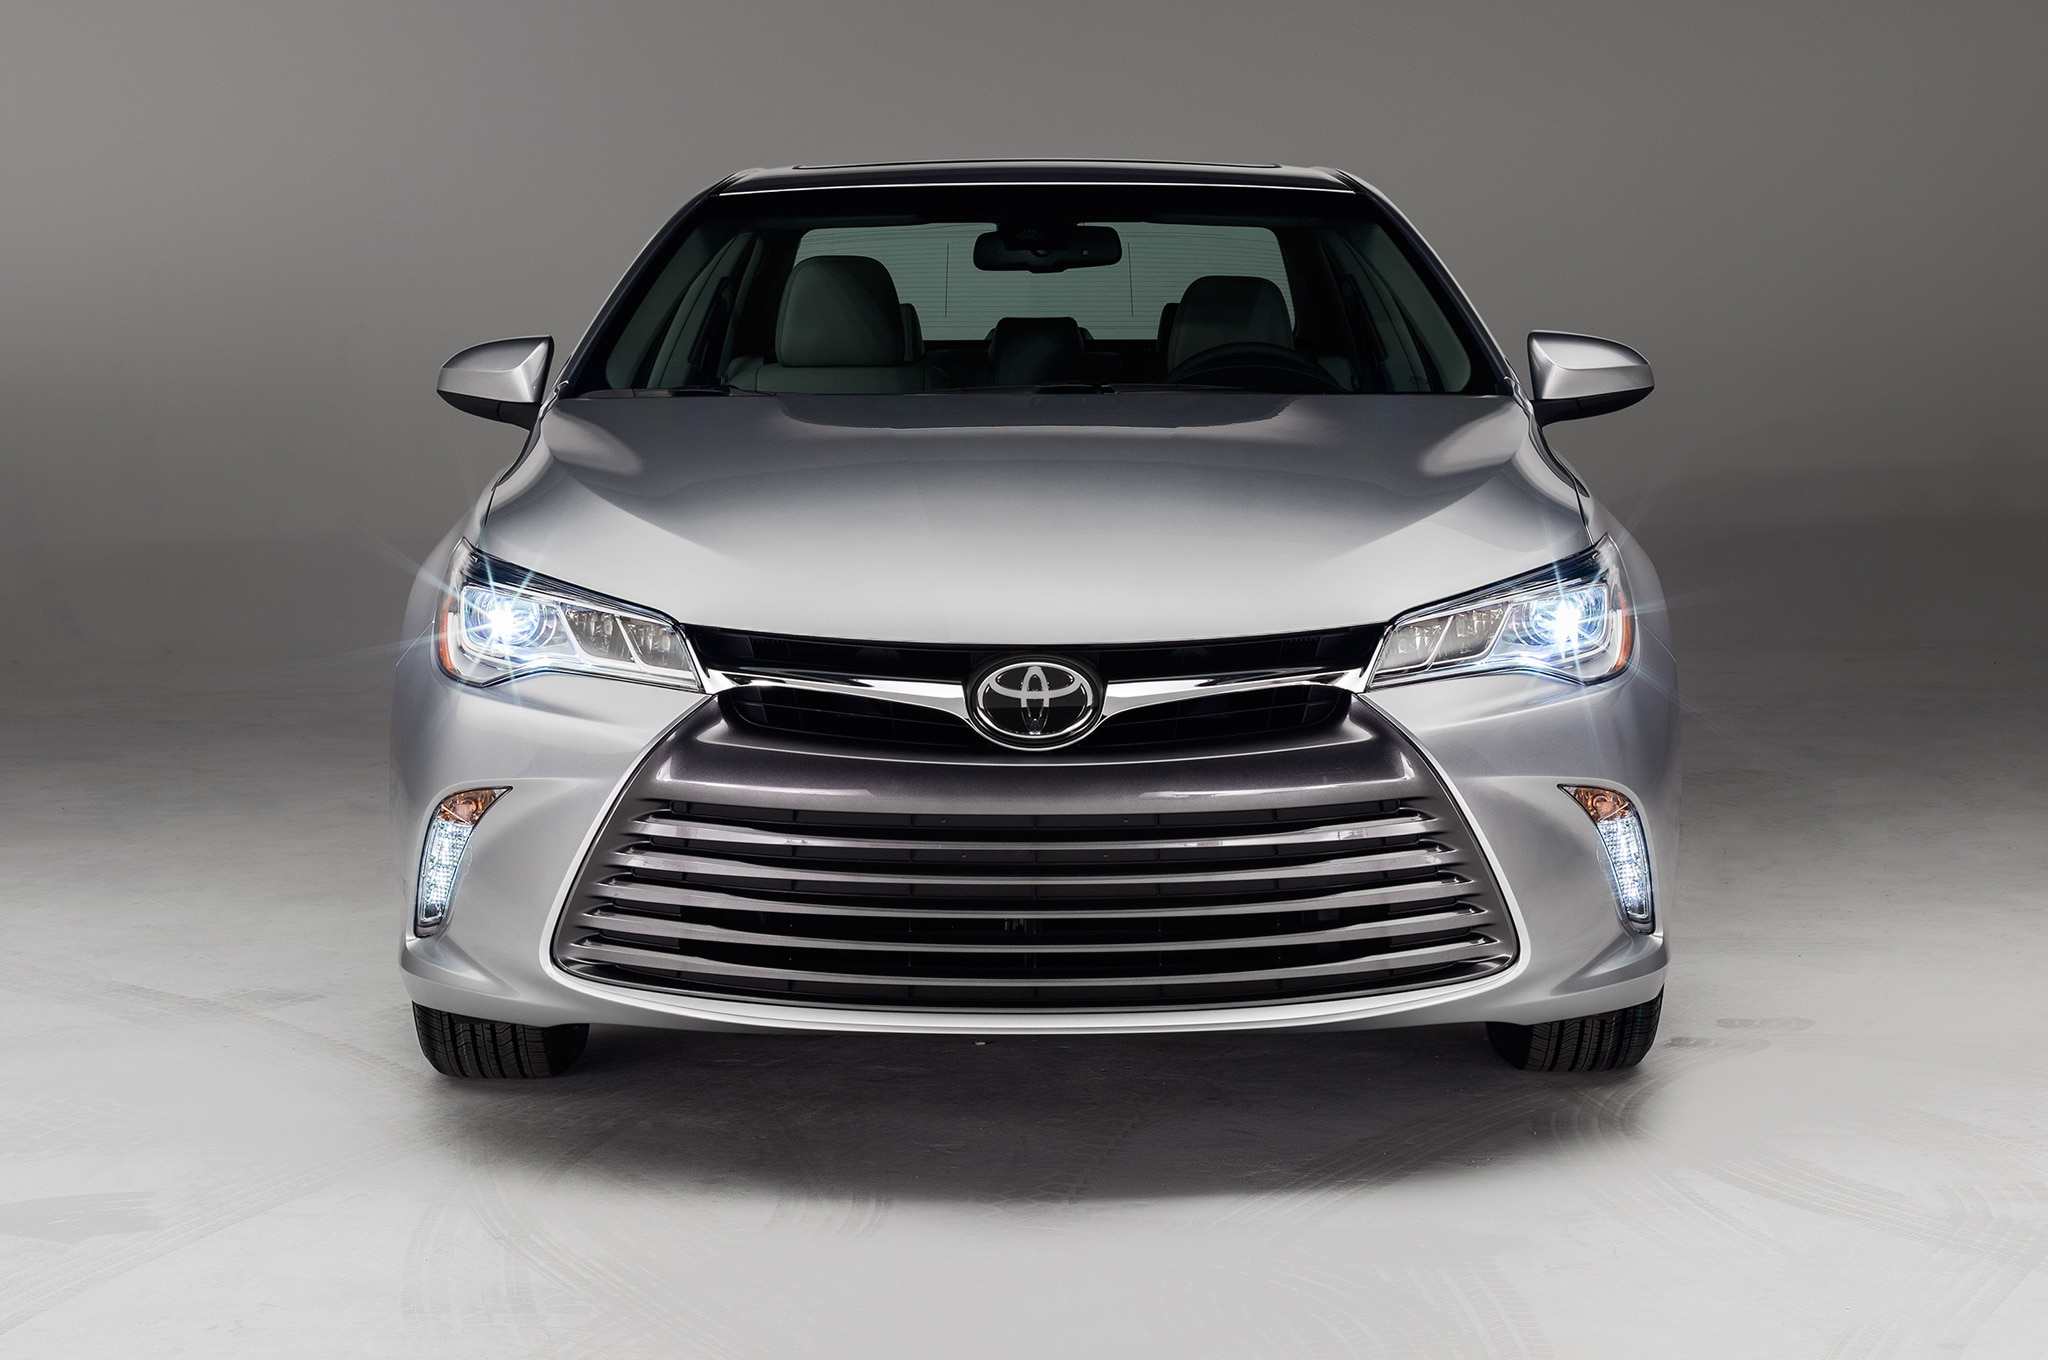 2015 Toyota Camry XLE front view lights on sing ligth wiring diagram camry 2015 conventional fire alarm 2015 Toyota Camry Spare Tire Location at crackthecode.co